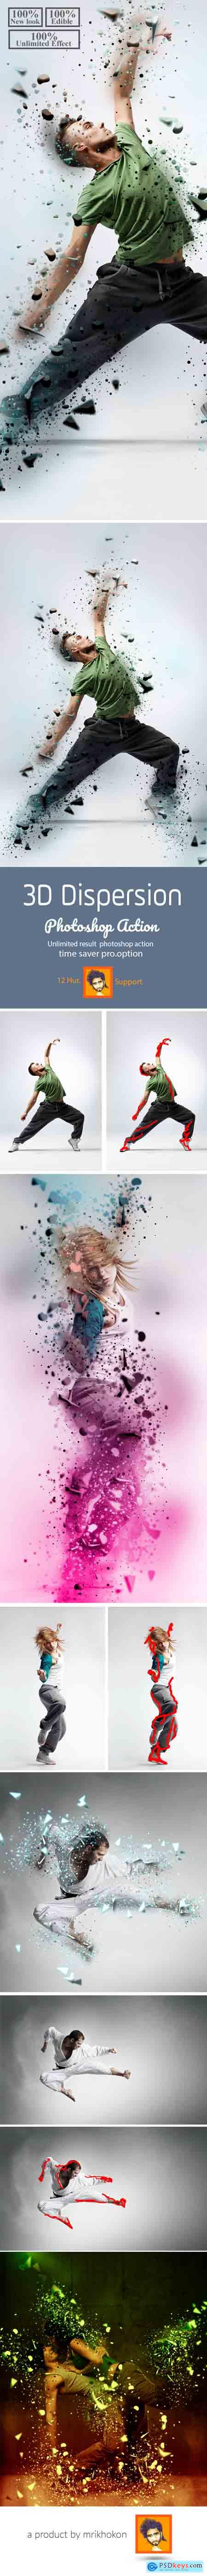 Graphicriver 3D Dispersion Photoshop Action